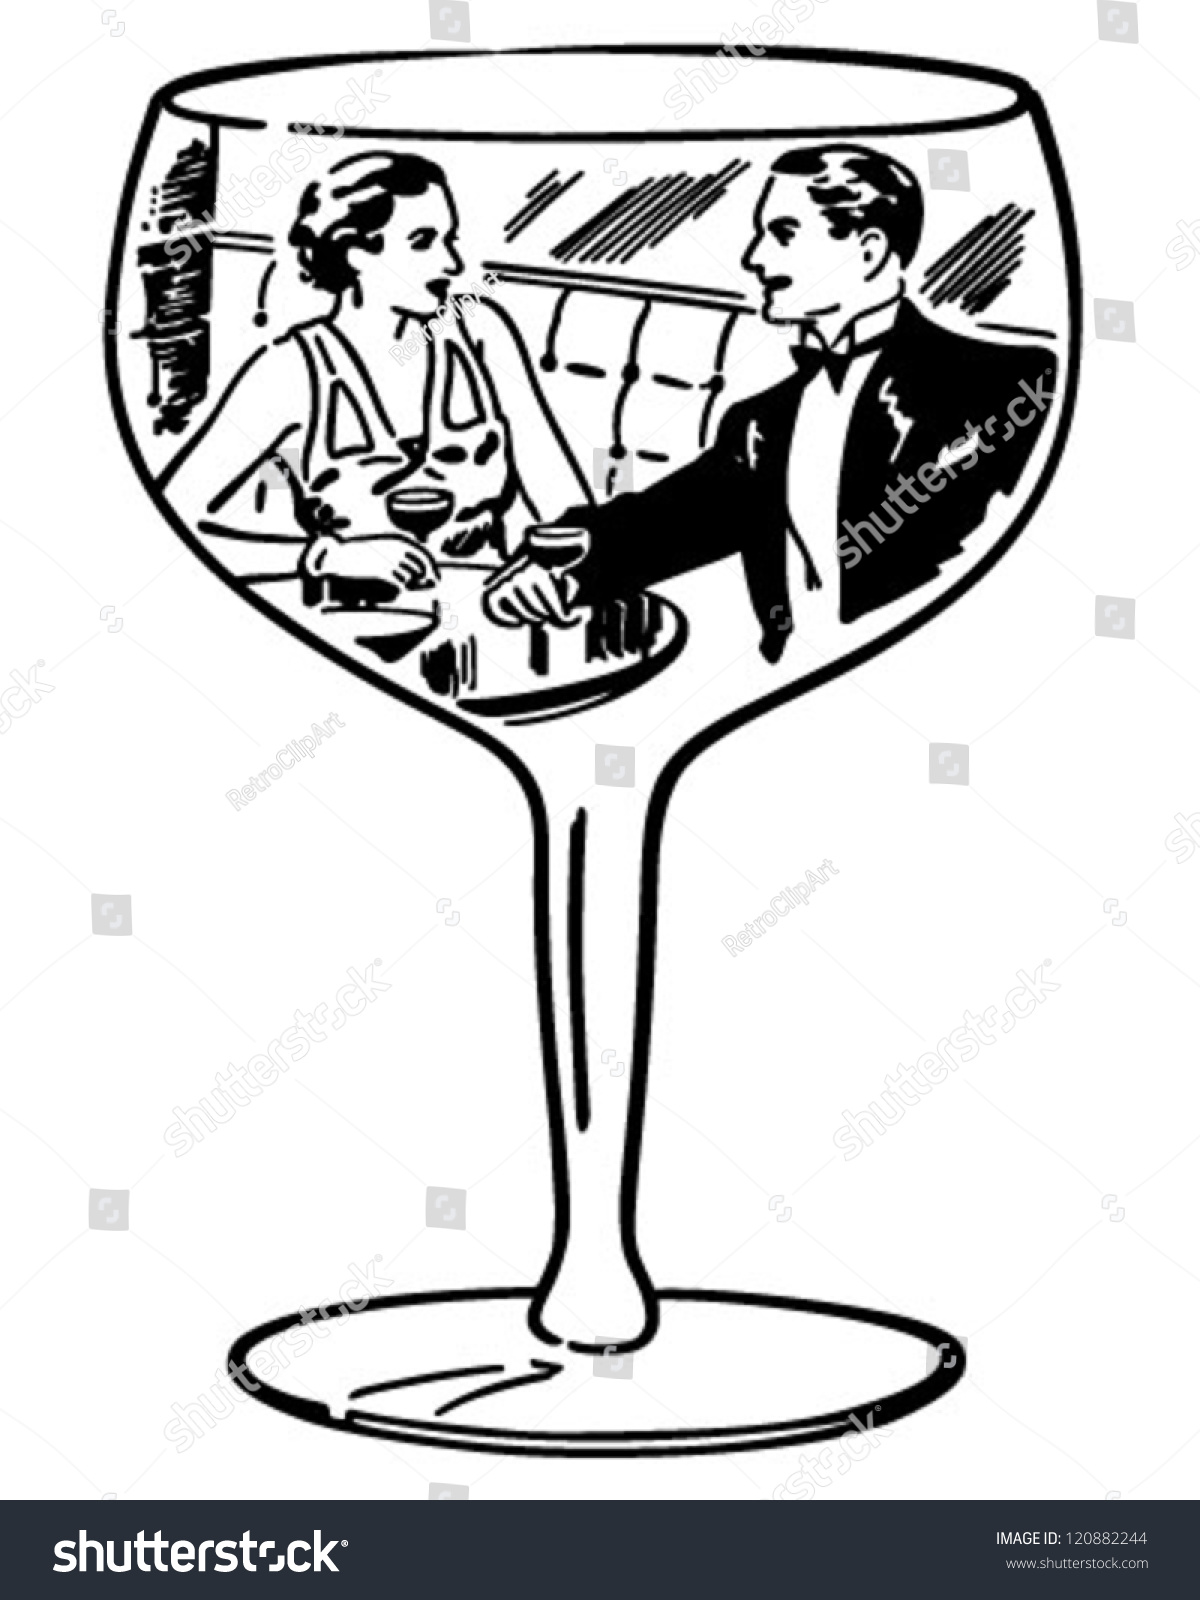 hight resolution of couple in wine glass retro clipart illustration